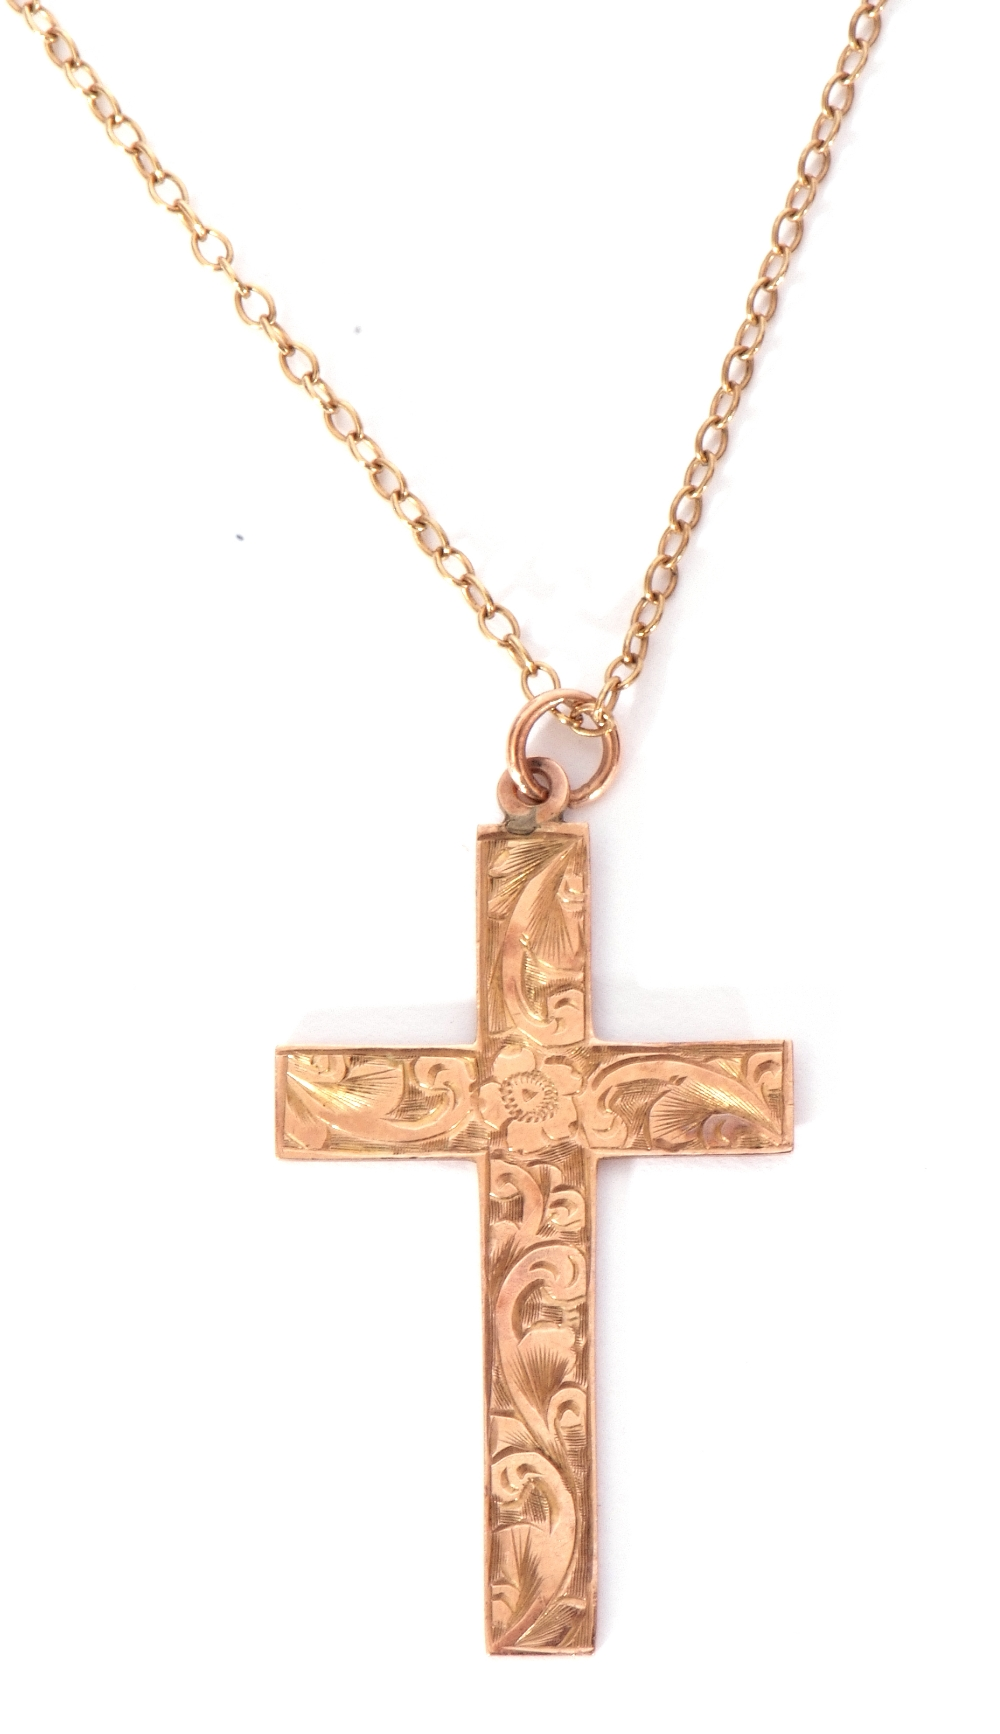 9ct stamped cross pendant, chased and engraved scroll decorated front, 35 x 22mm - Image 4 of 5